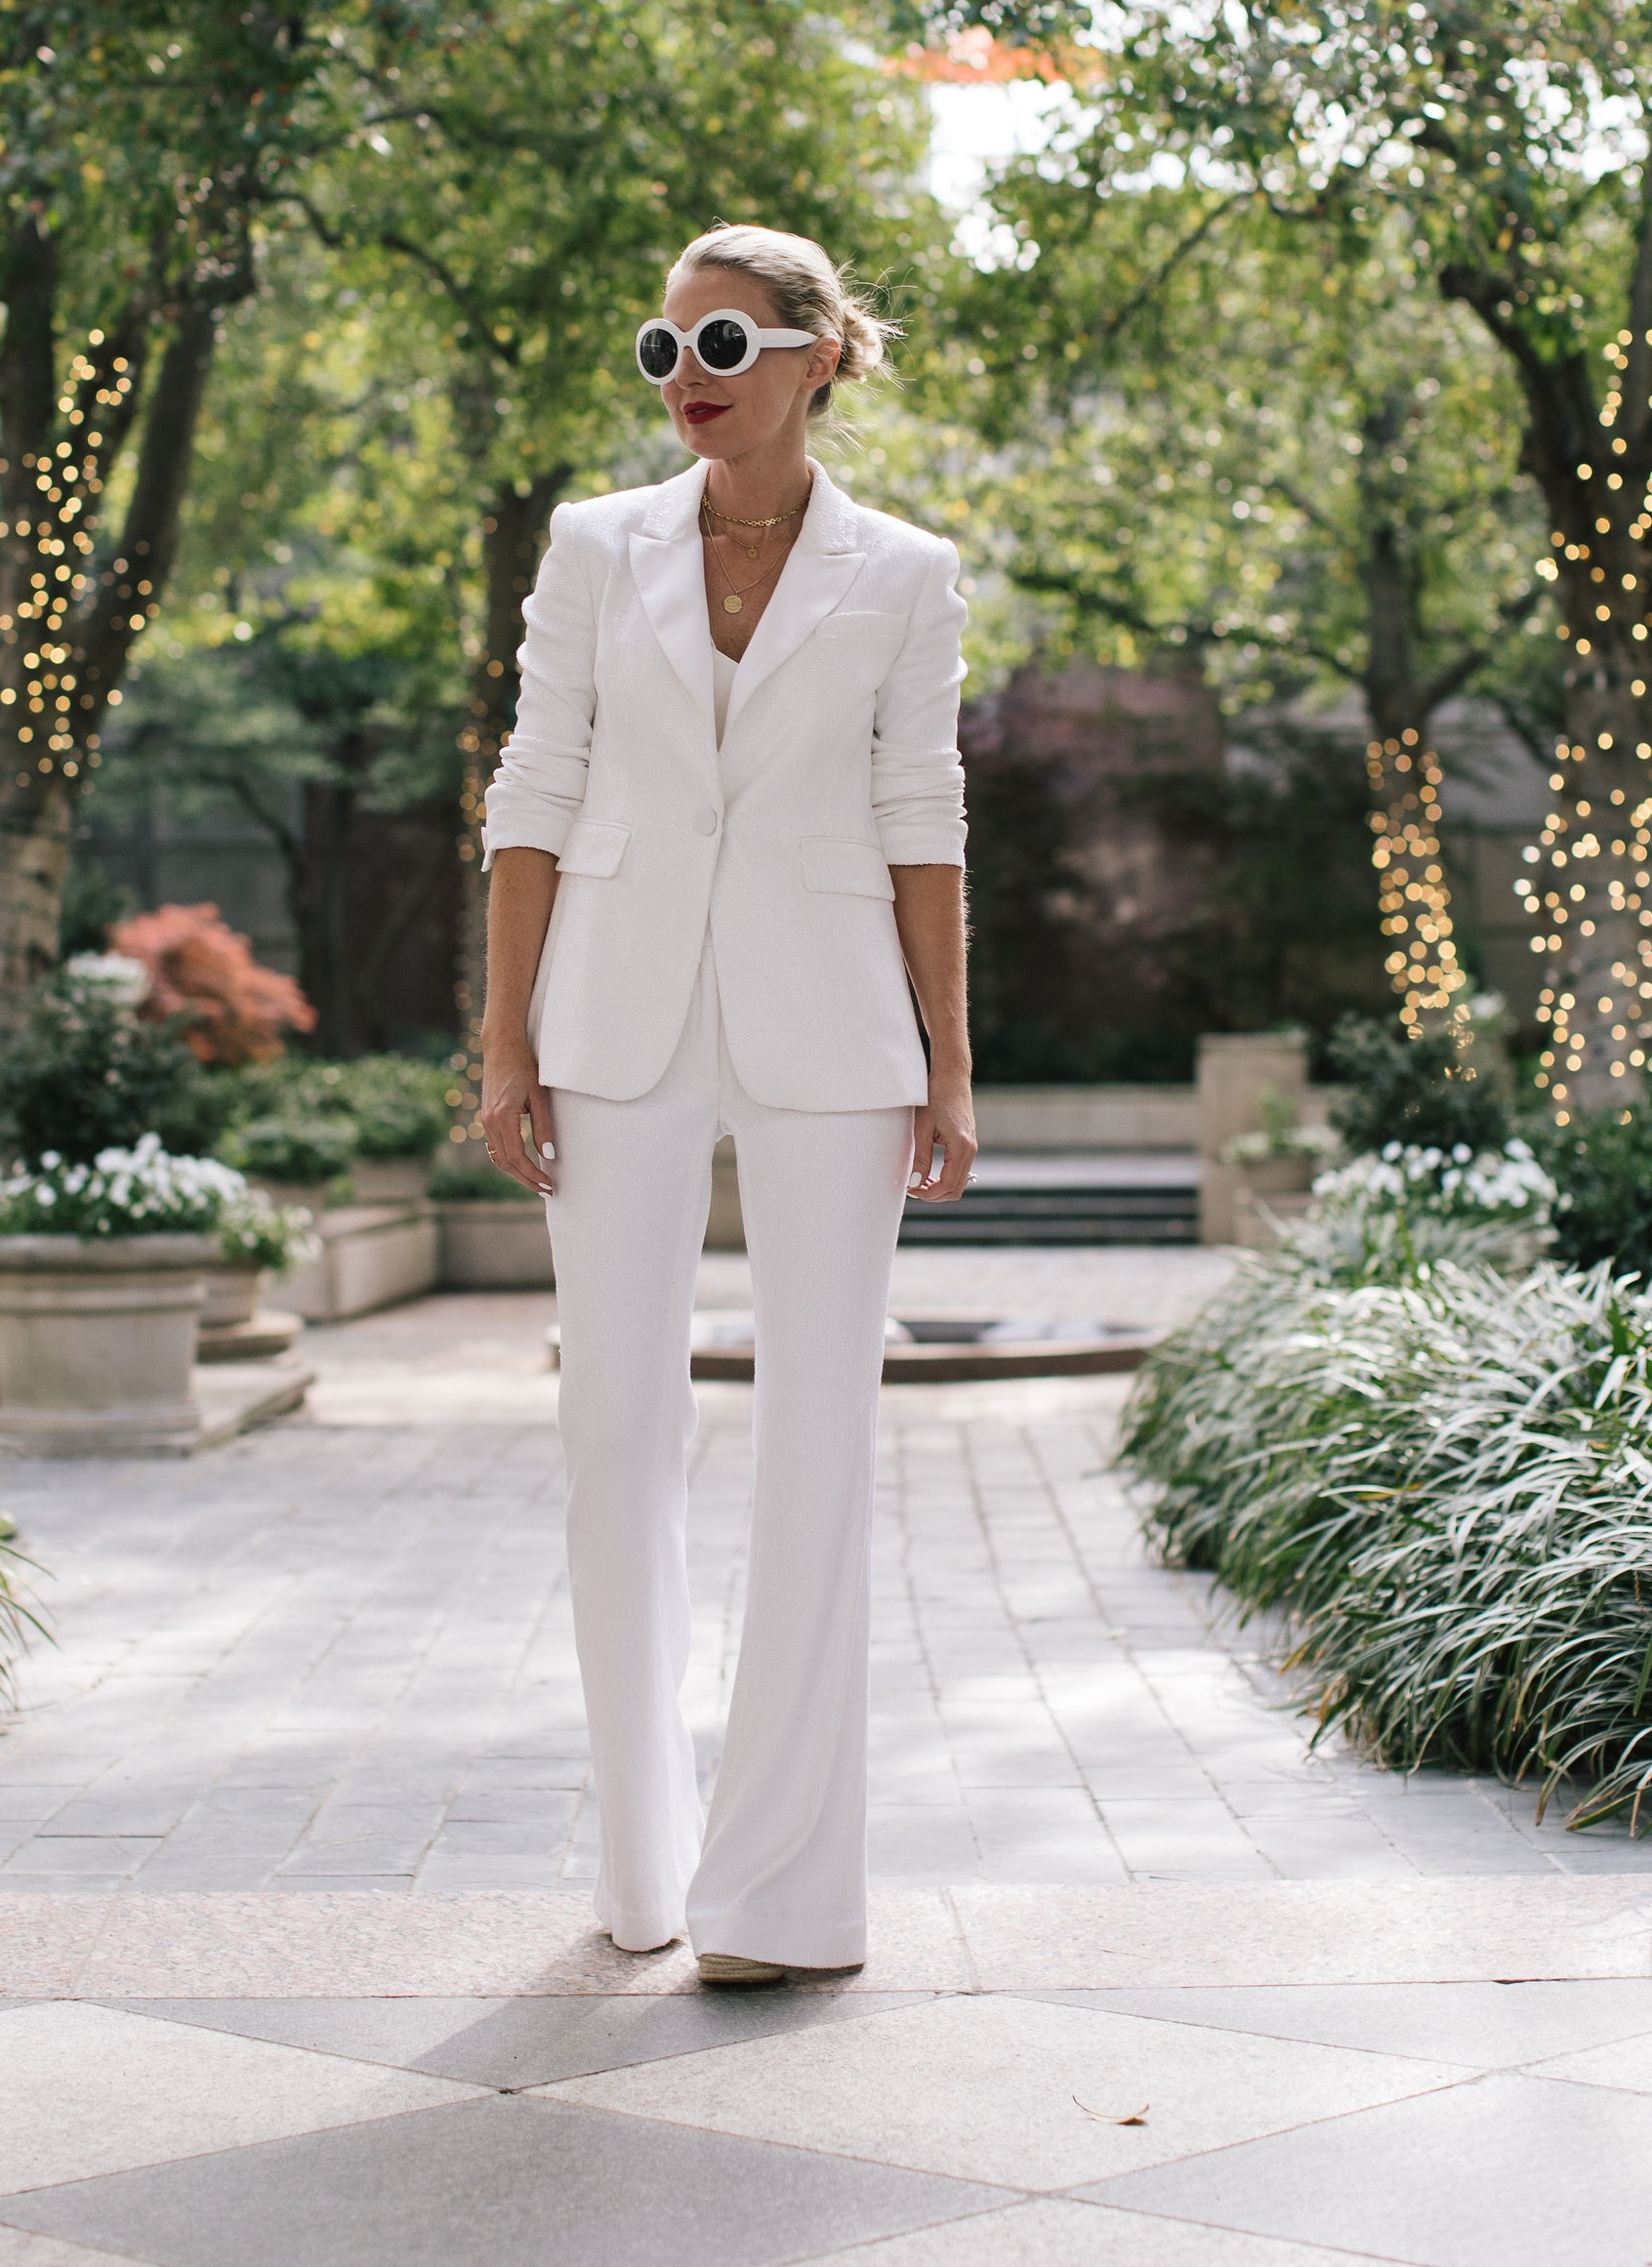 Perfect White Suit, Fashion blogger Erin Busbee of BusbeeStyle.com wearing a matching white sequin blazer and wide leg pants by Rachel Zoe, white pointed toe pumps, and a white chloe nile bag in Dallas, Texas